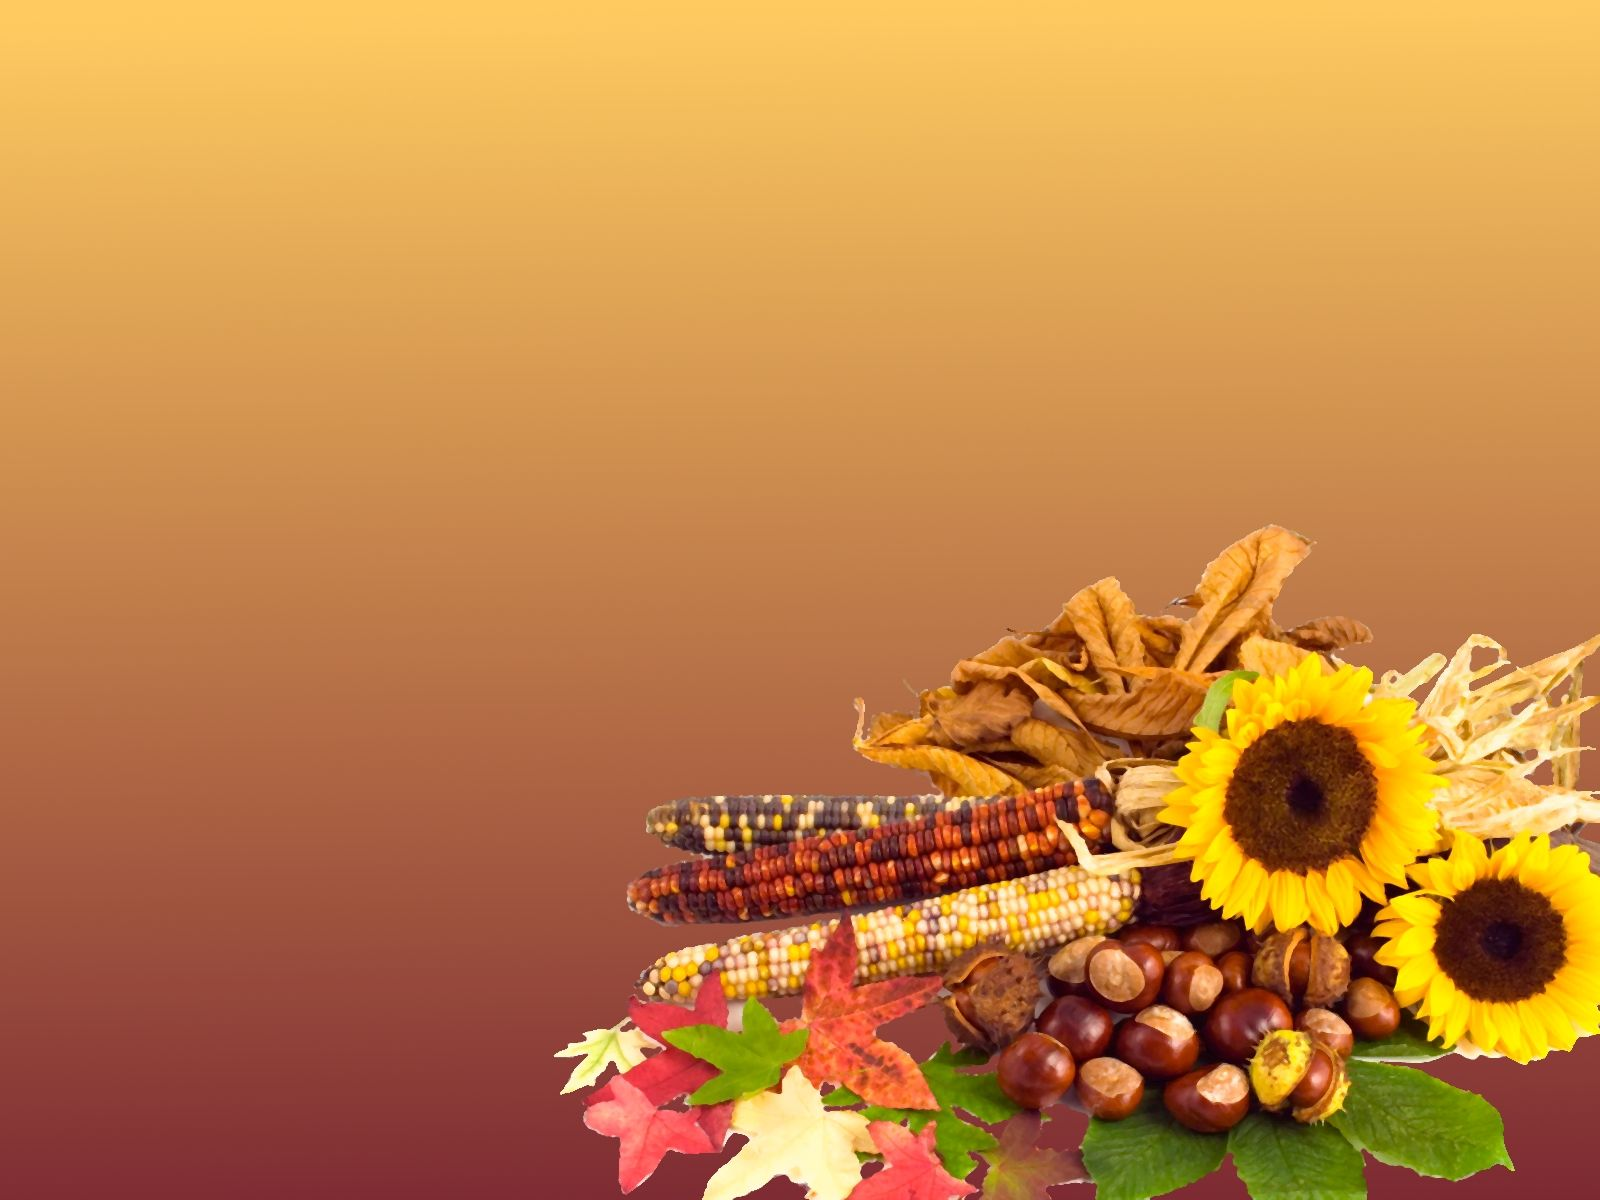 Thanksgiving powerpoint backgrounds hd free wallpapers - Thanksgiving screen backgrounds ...